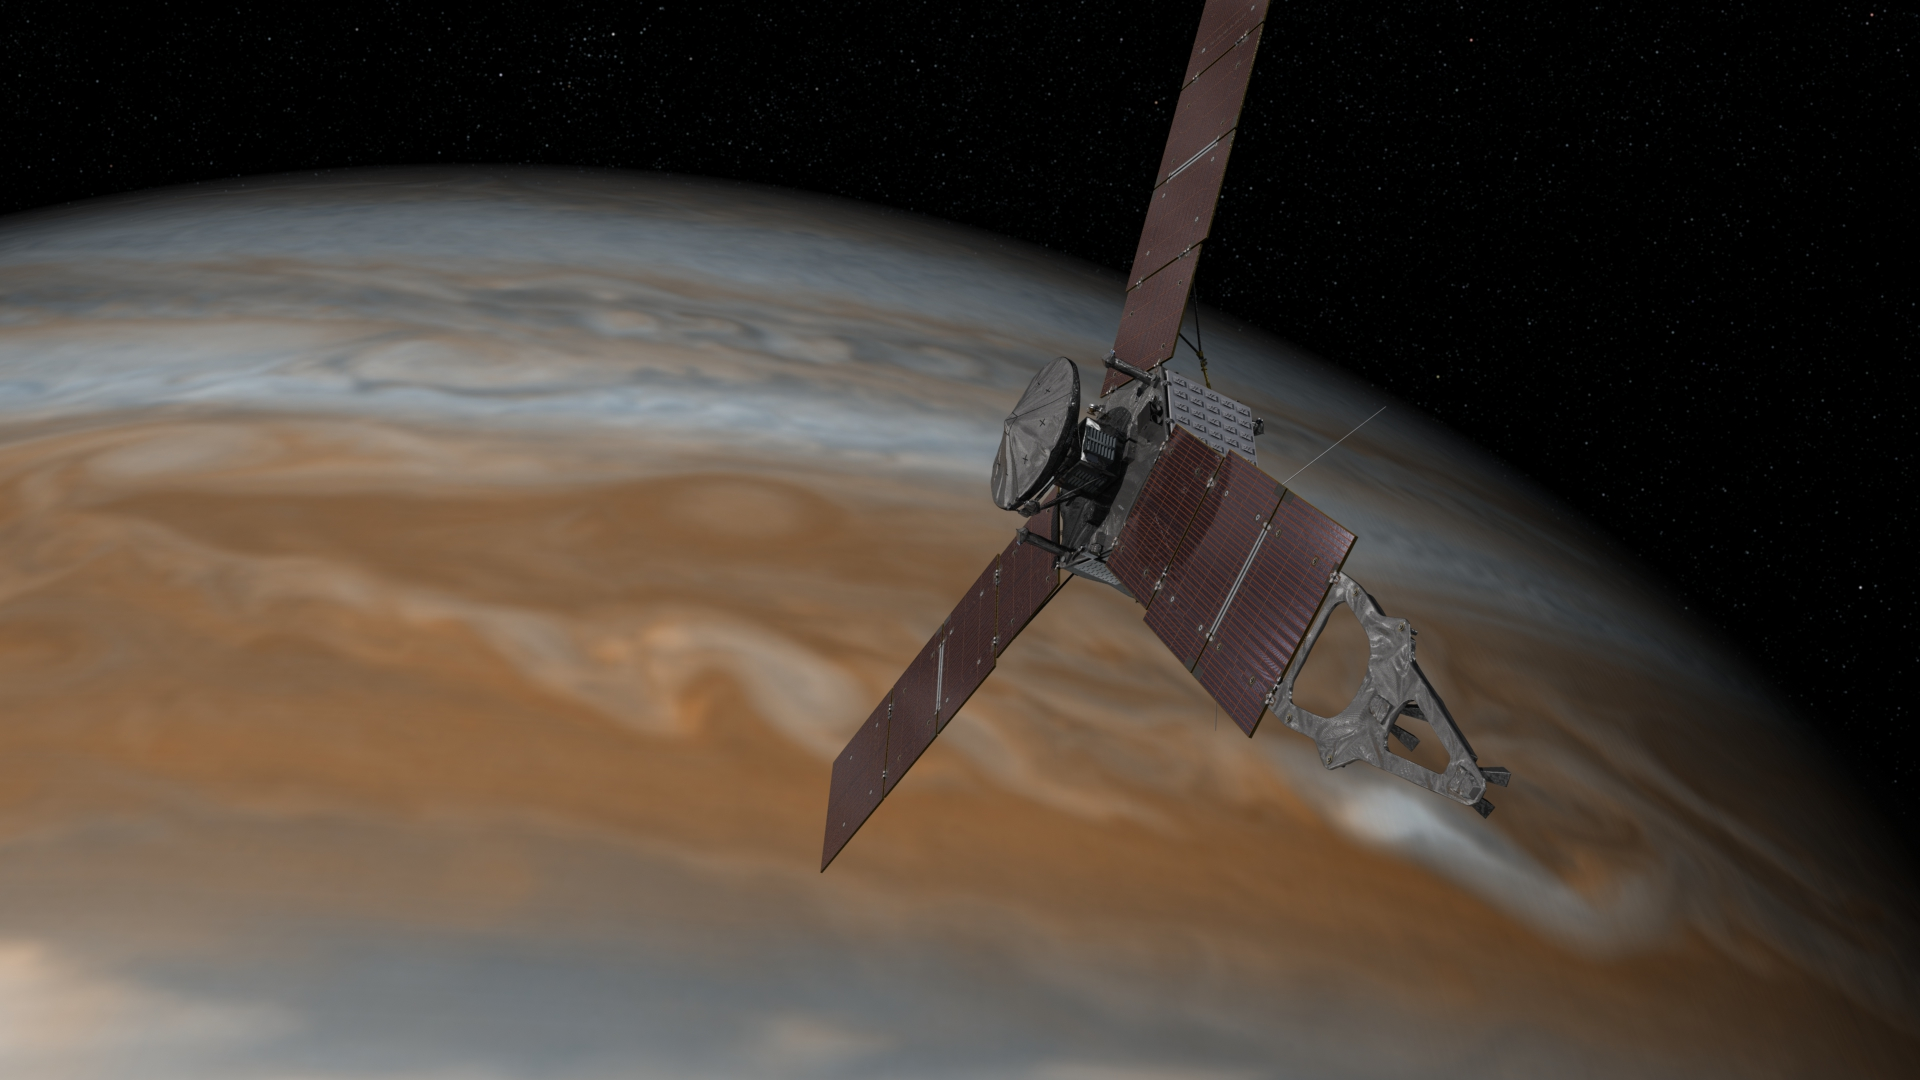 Juno at Jupiter: Artist's Illustration